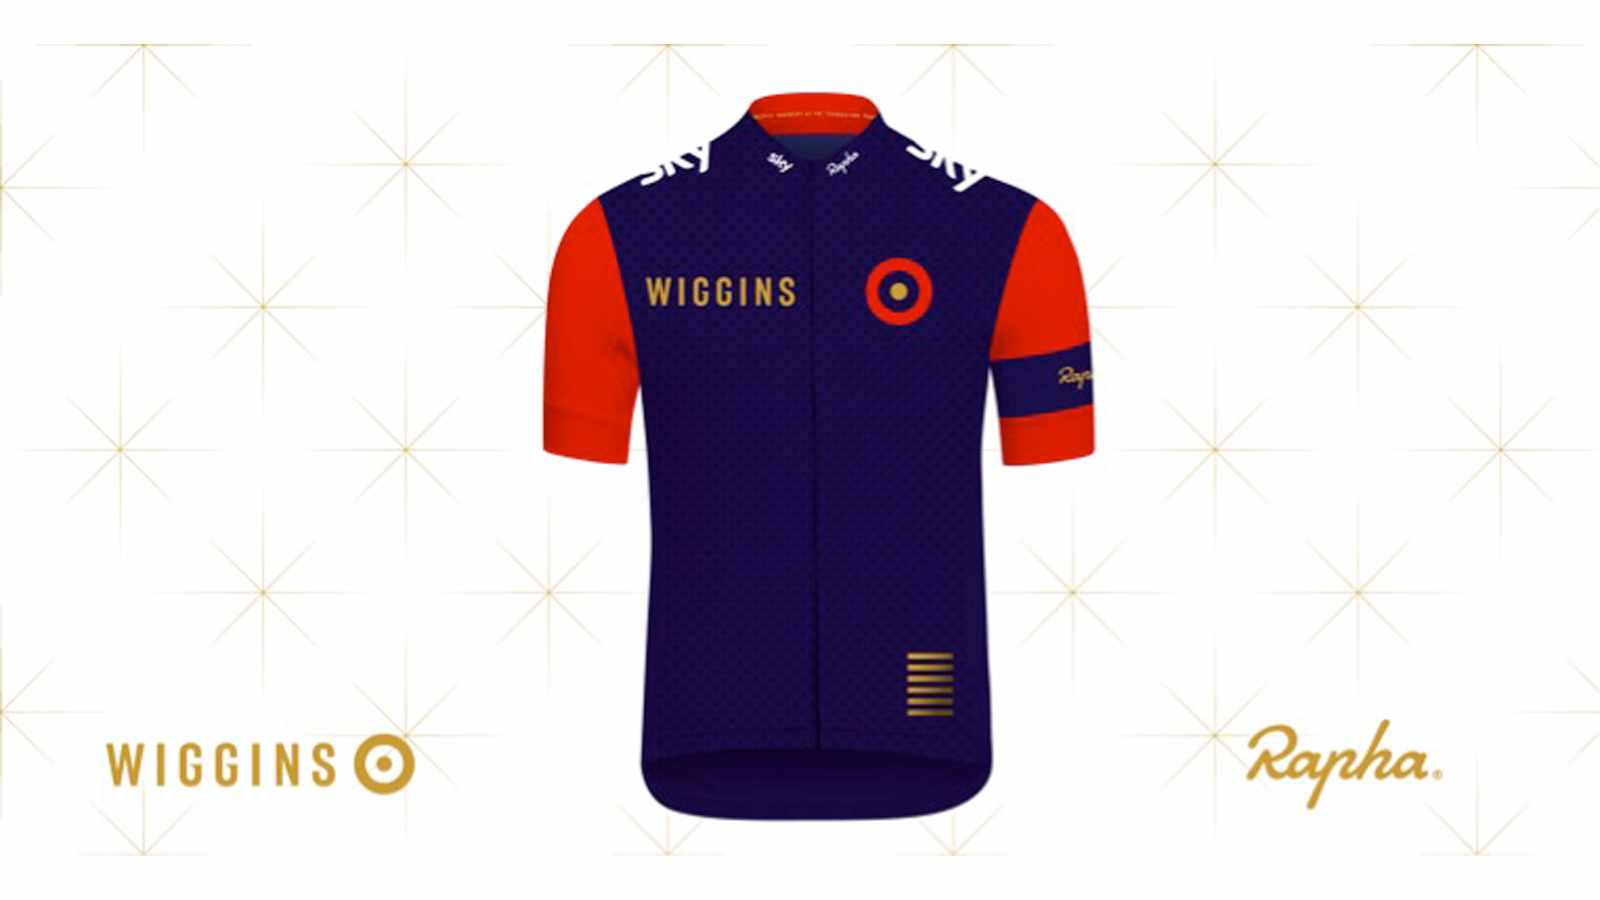 The new Wiggins Rapha kit uses union jack colours with flashes of gold